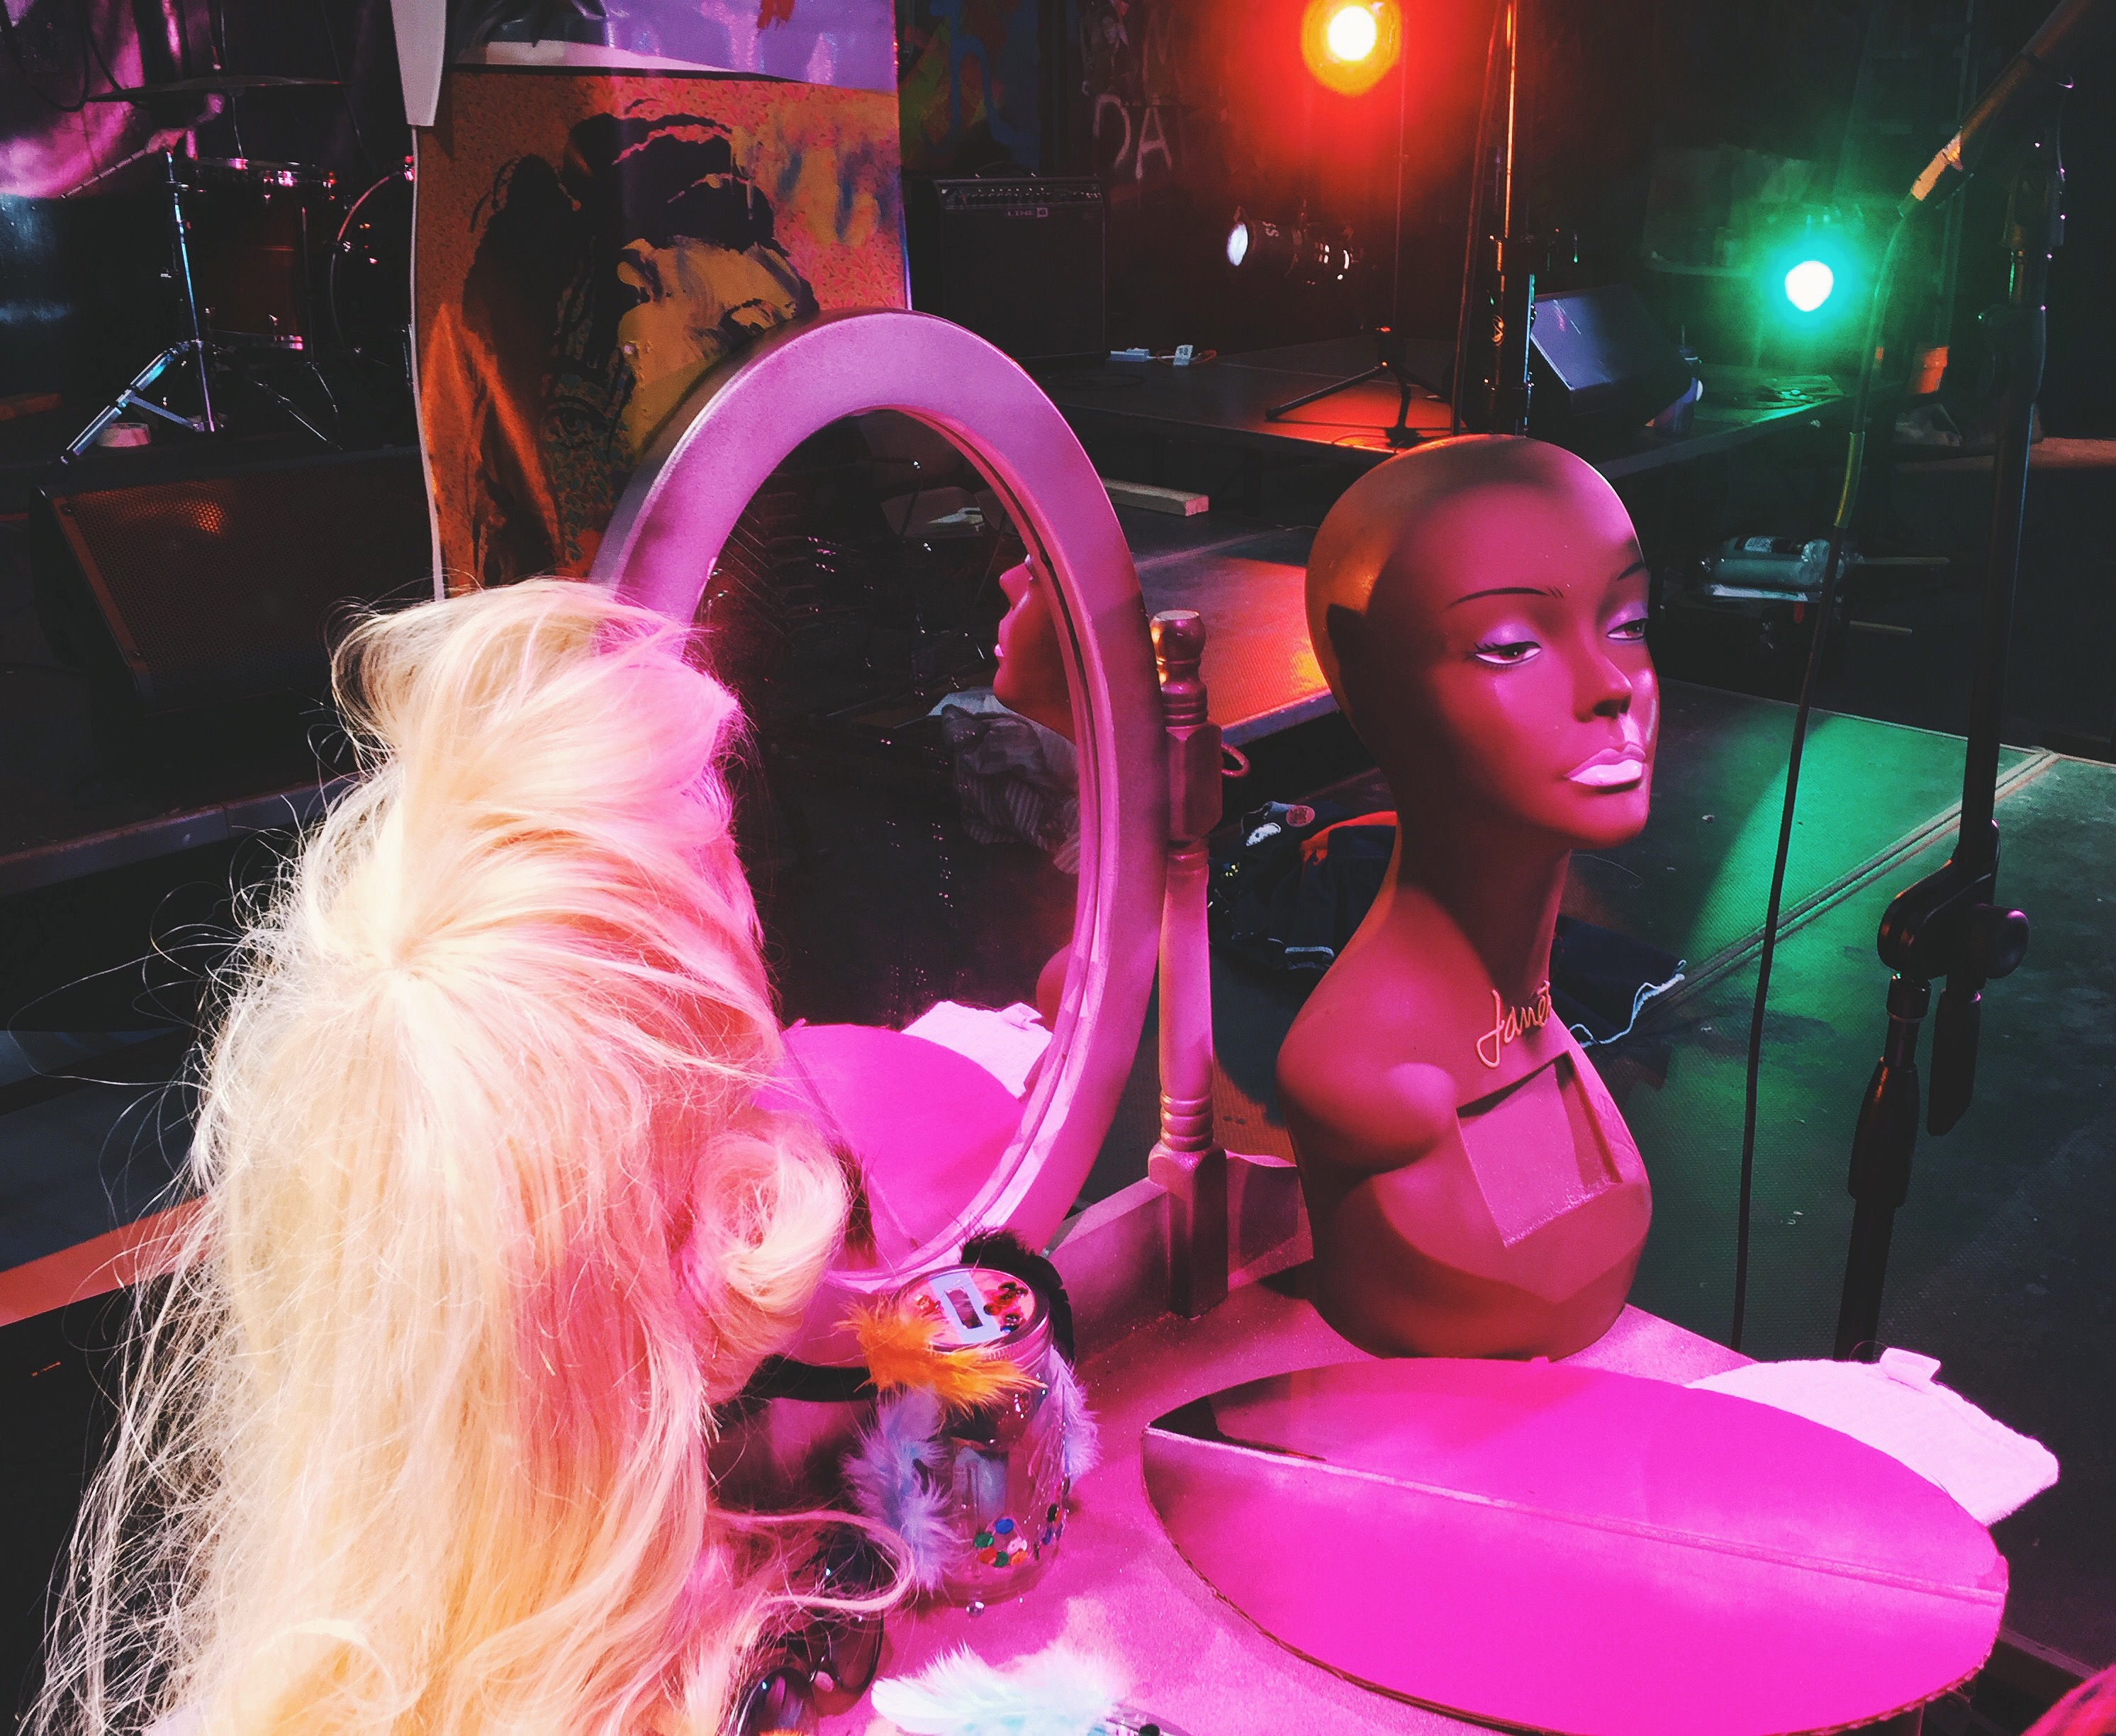 Wig backstage at Hedwig and the Angry Inch